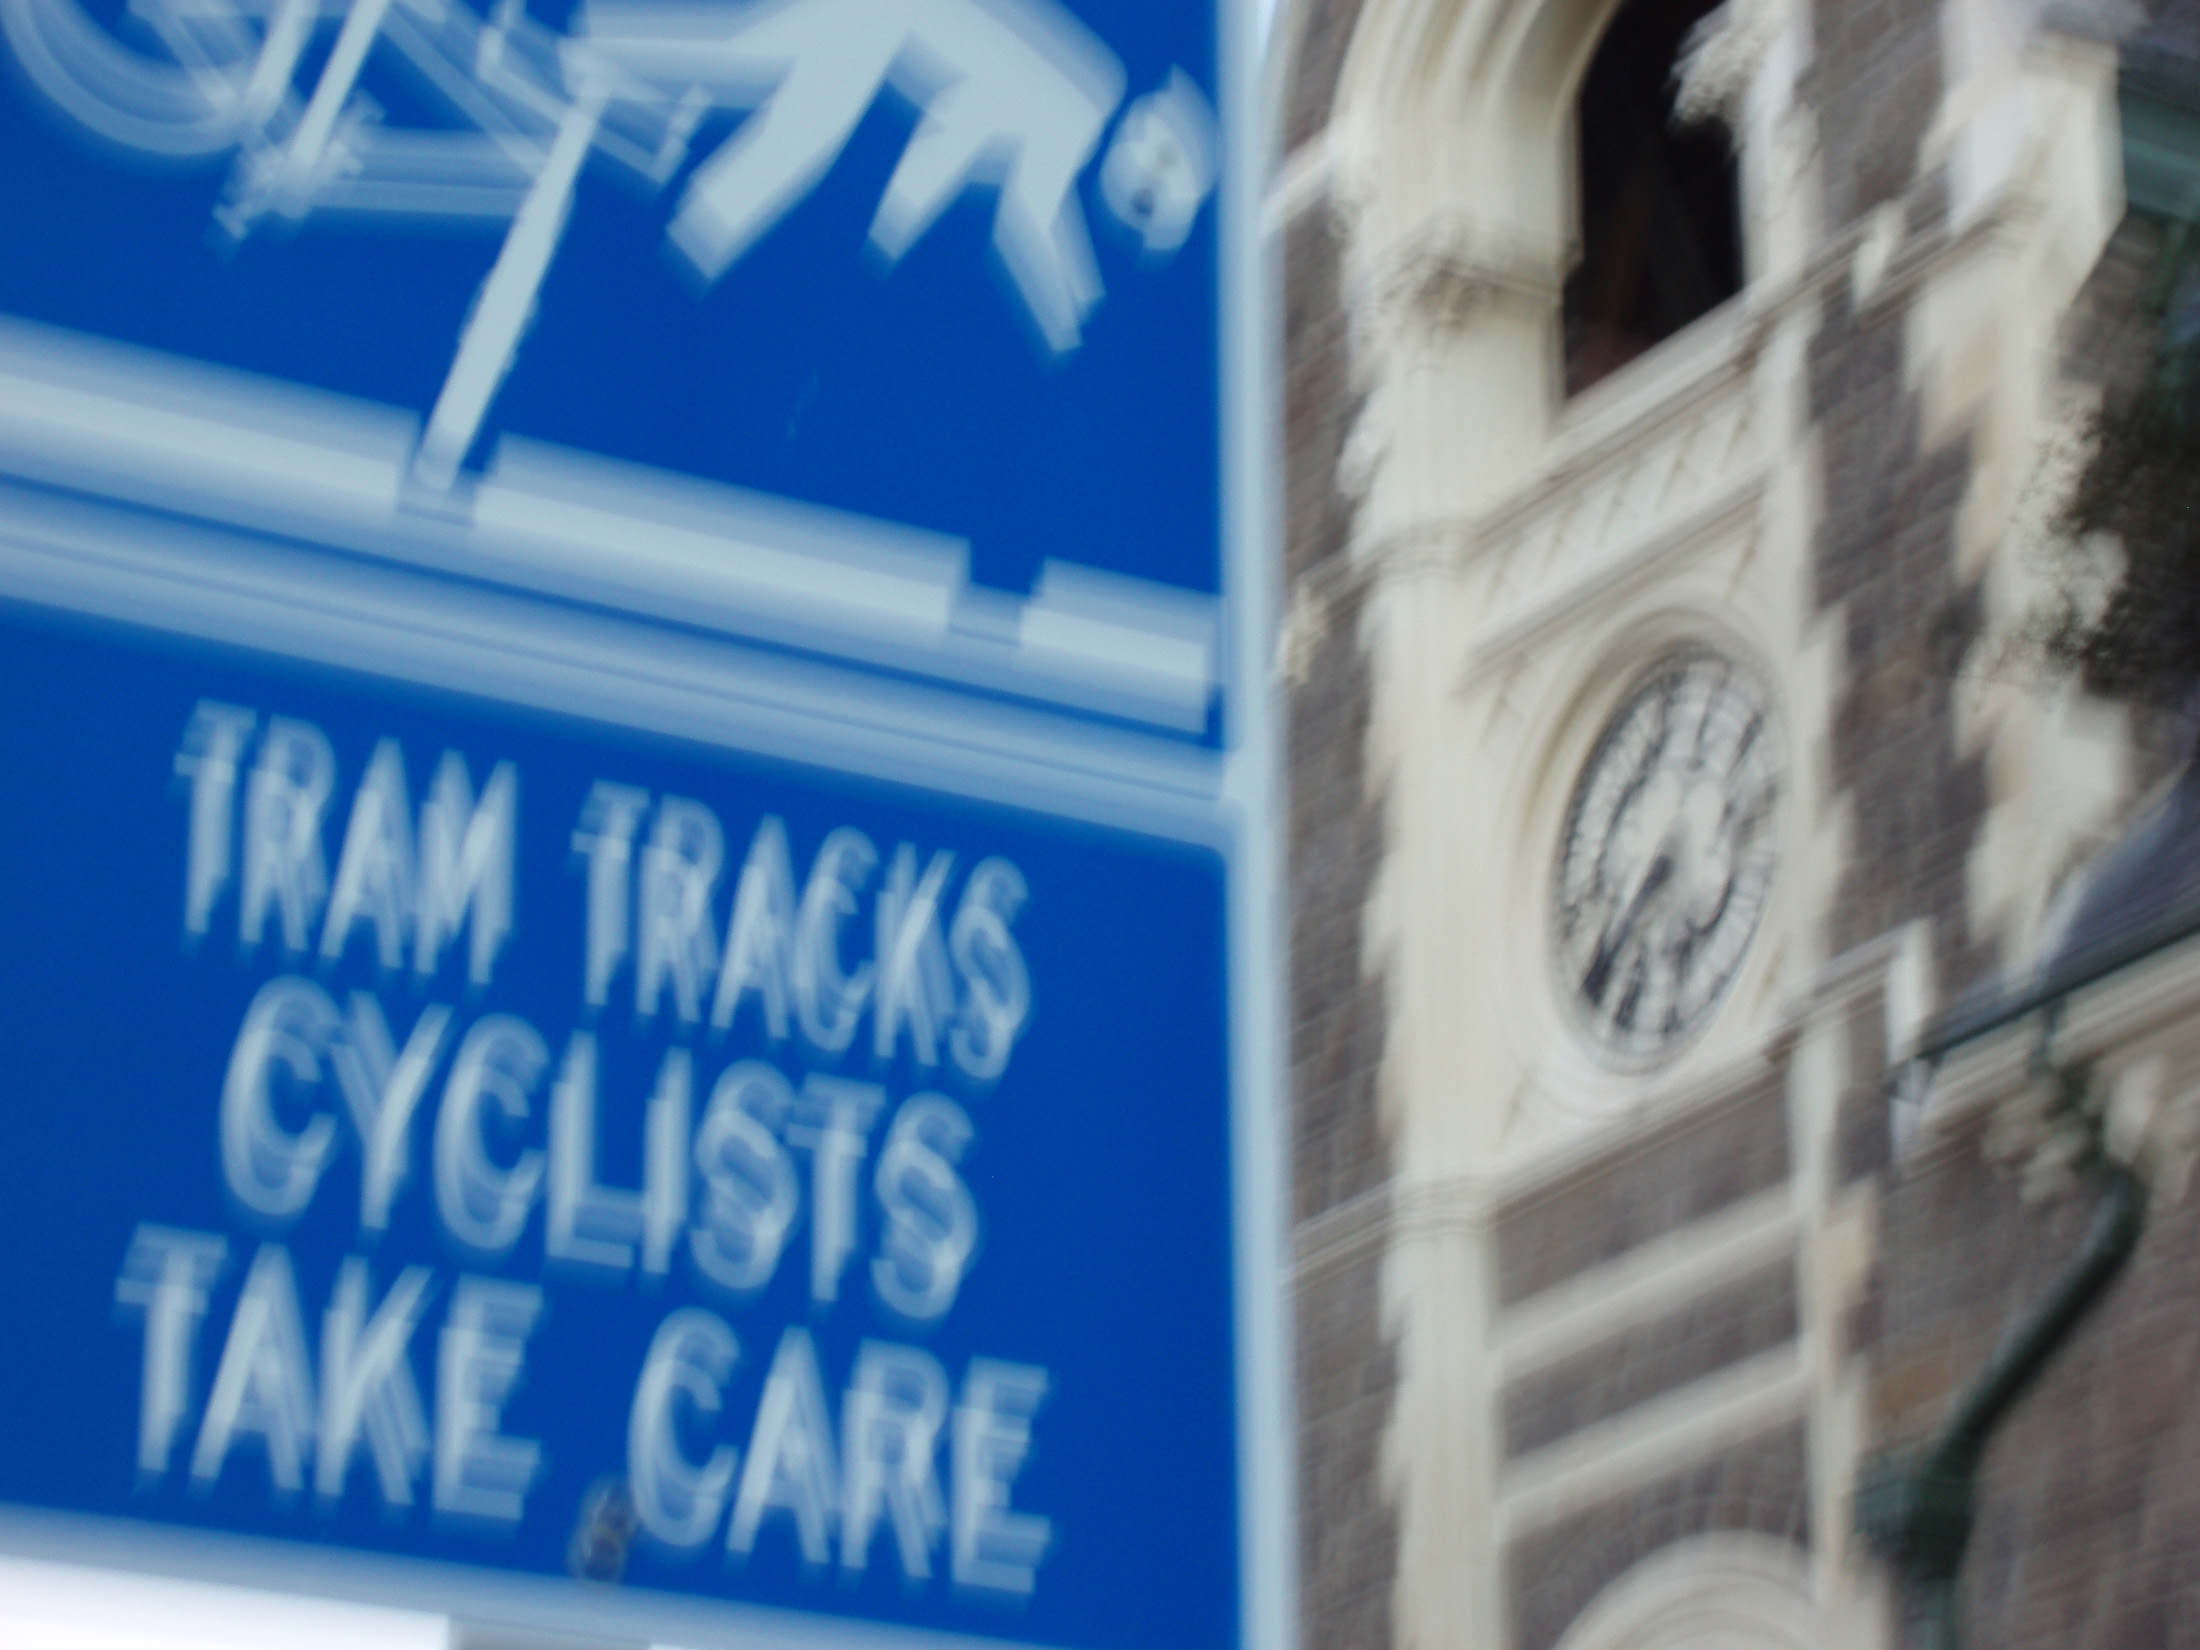 blurred tram track sign concept